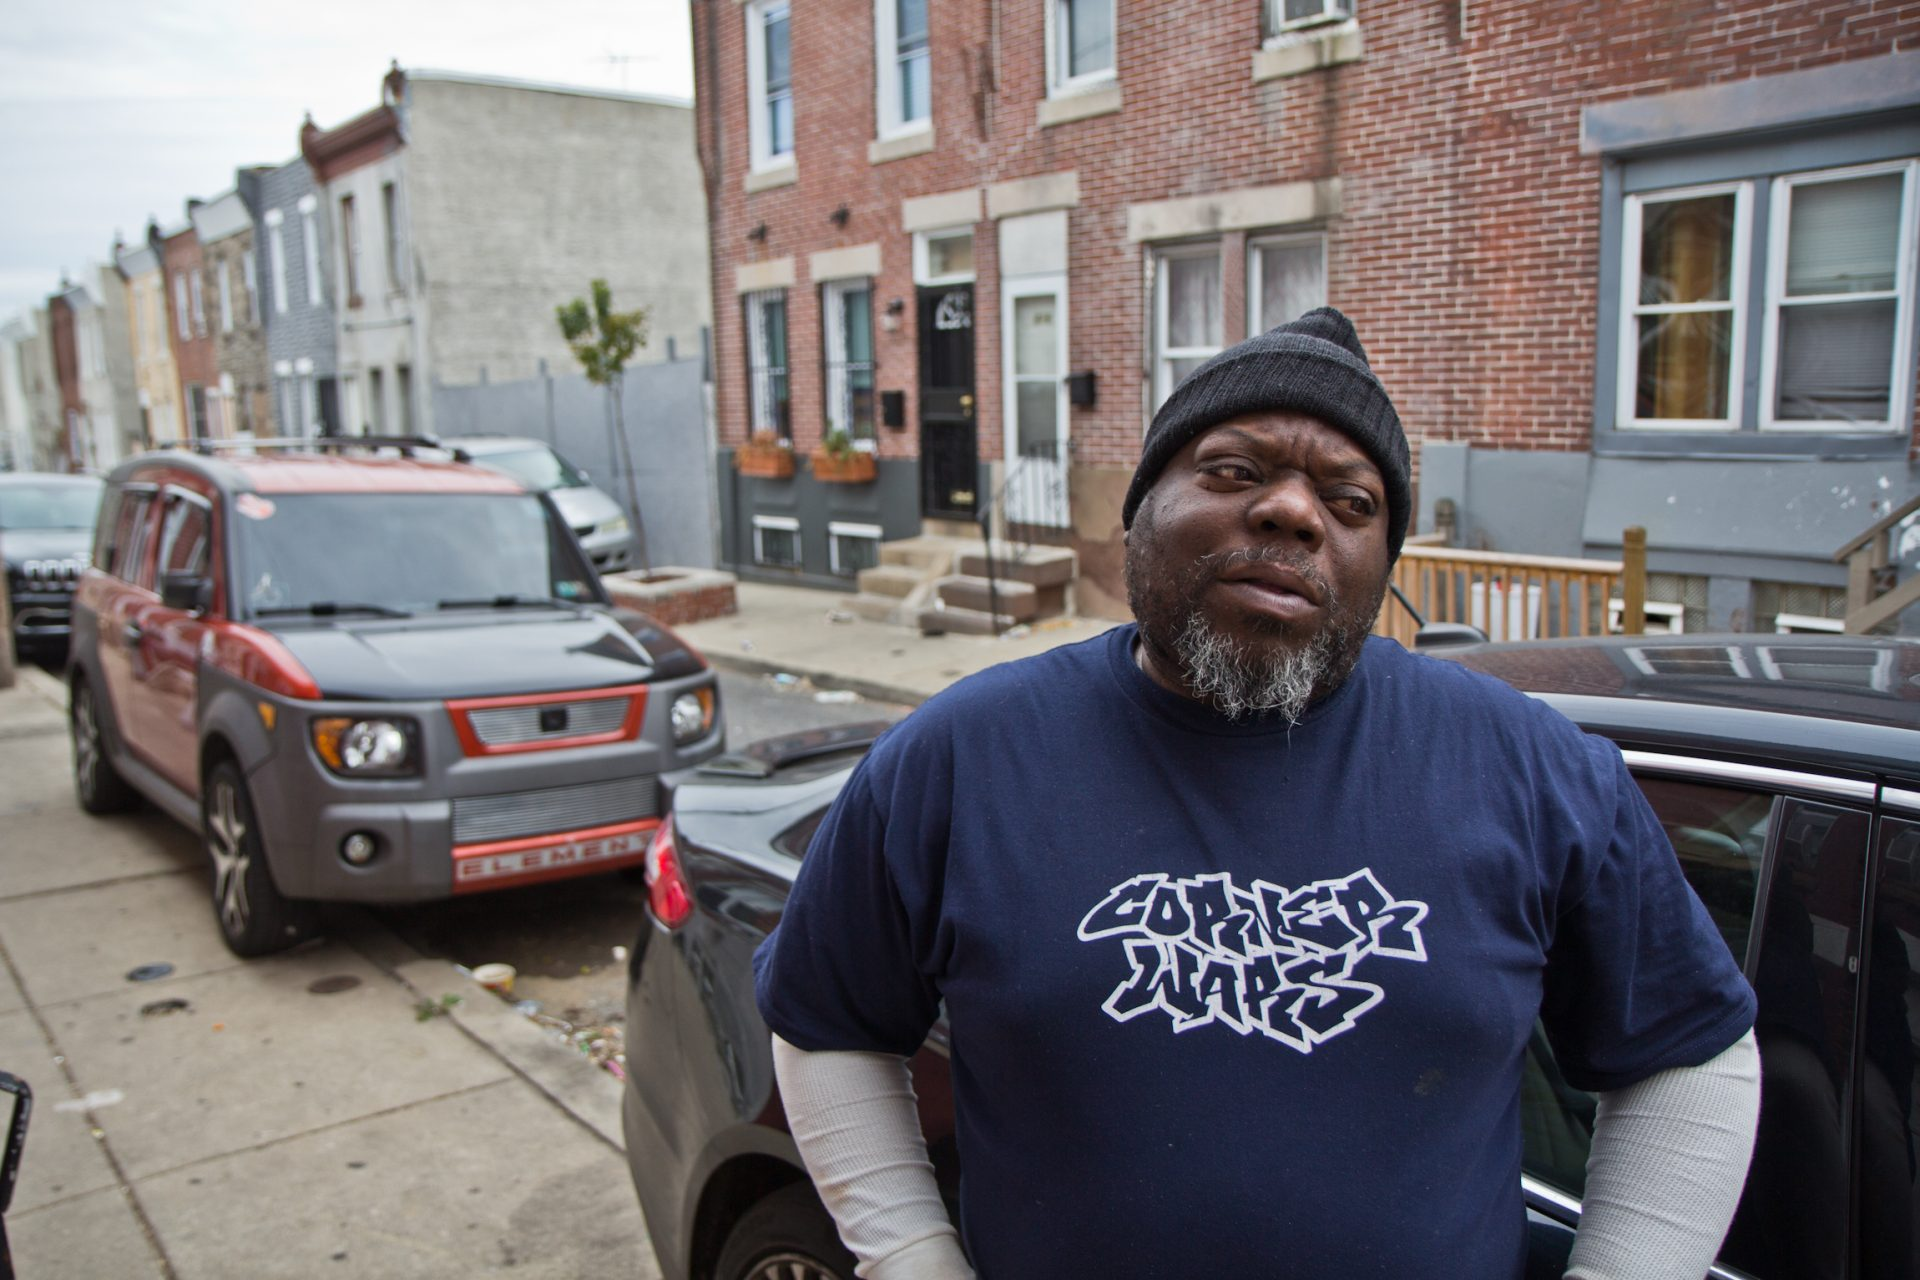 Galen Taylor, a founding member of the Poor People's Economic Rights Campaign, said officials need to more than arrest the criminal, but need to address issue of food, housing, health care and jobs in the city.